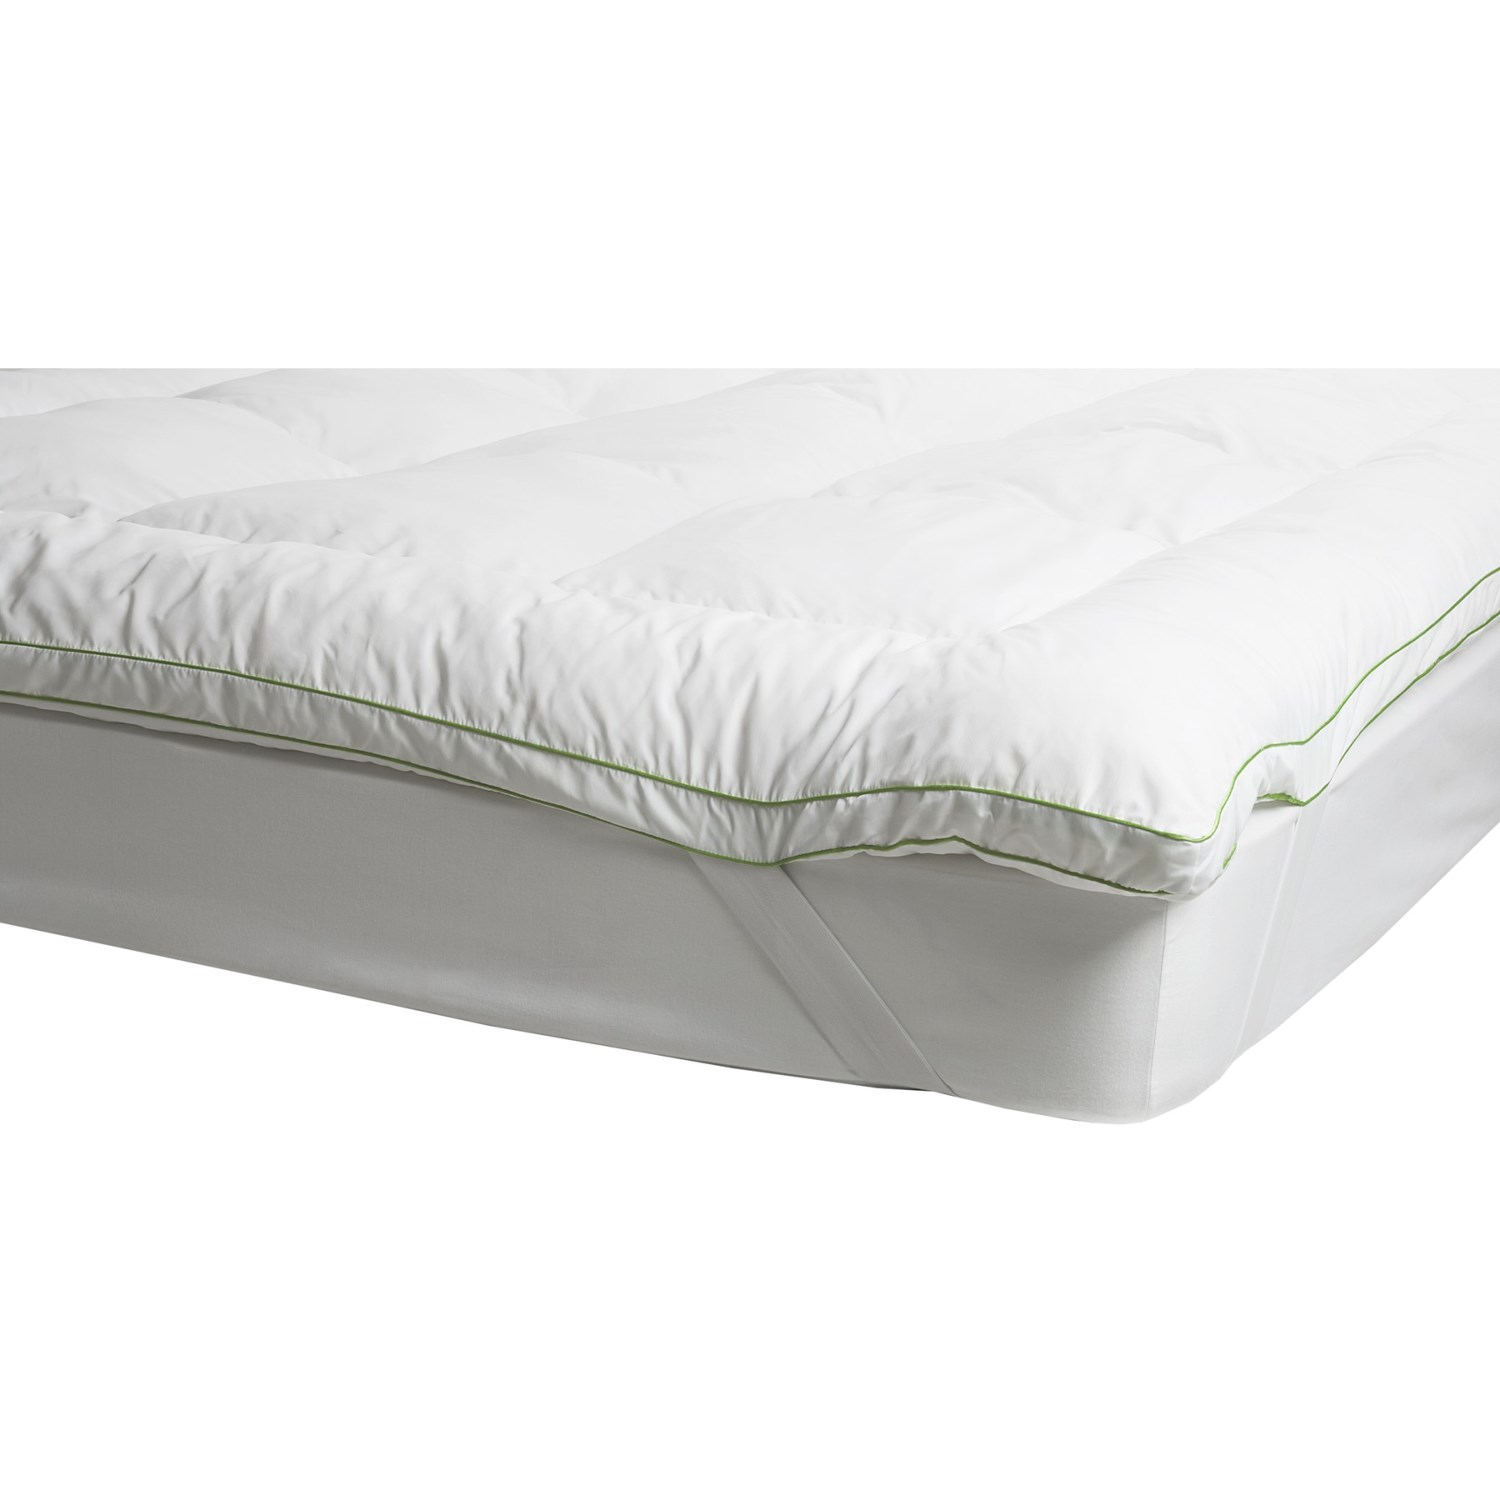 Soft Tex Memory Loft Deluxe Mattress Topper Queen Save 39%